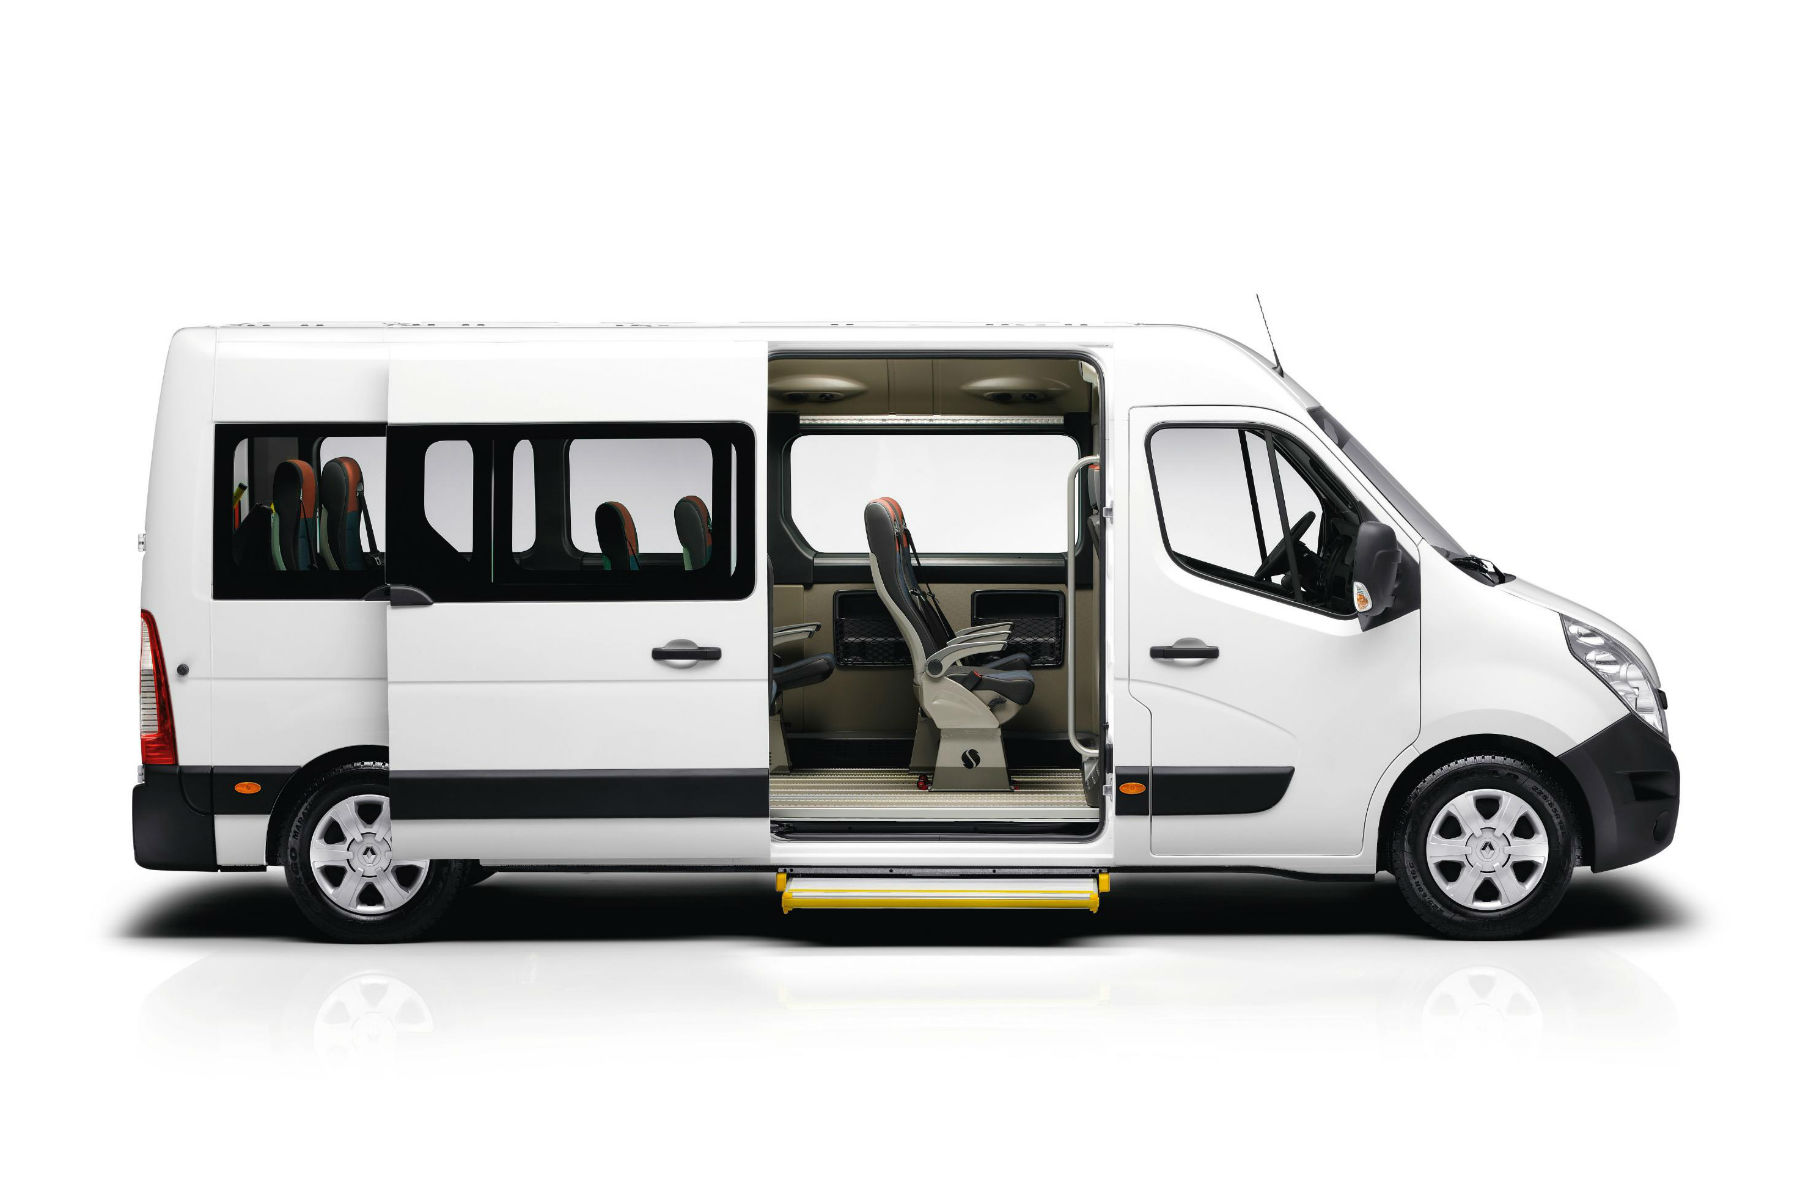 The government wants to give away £2m worth of new minibuses